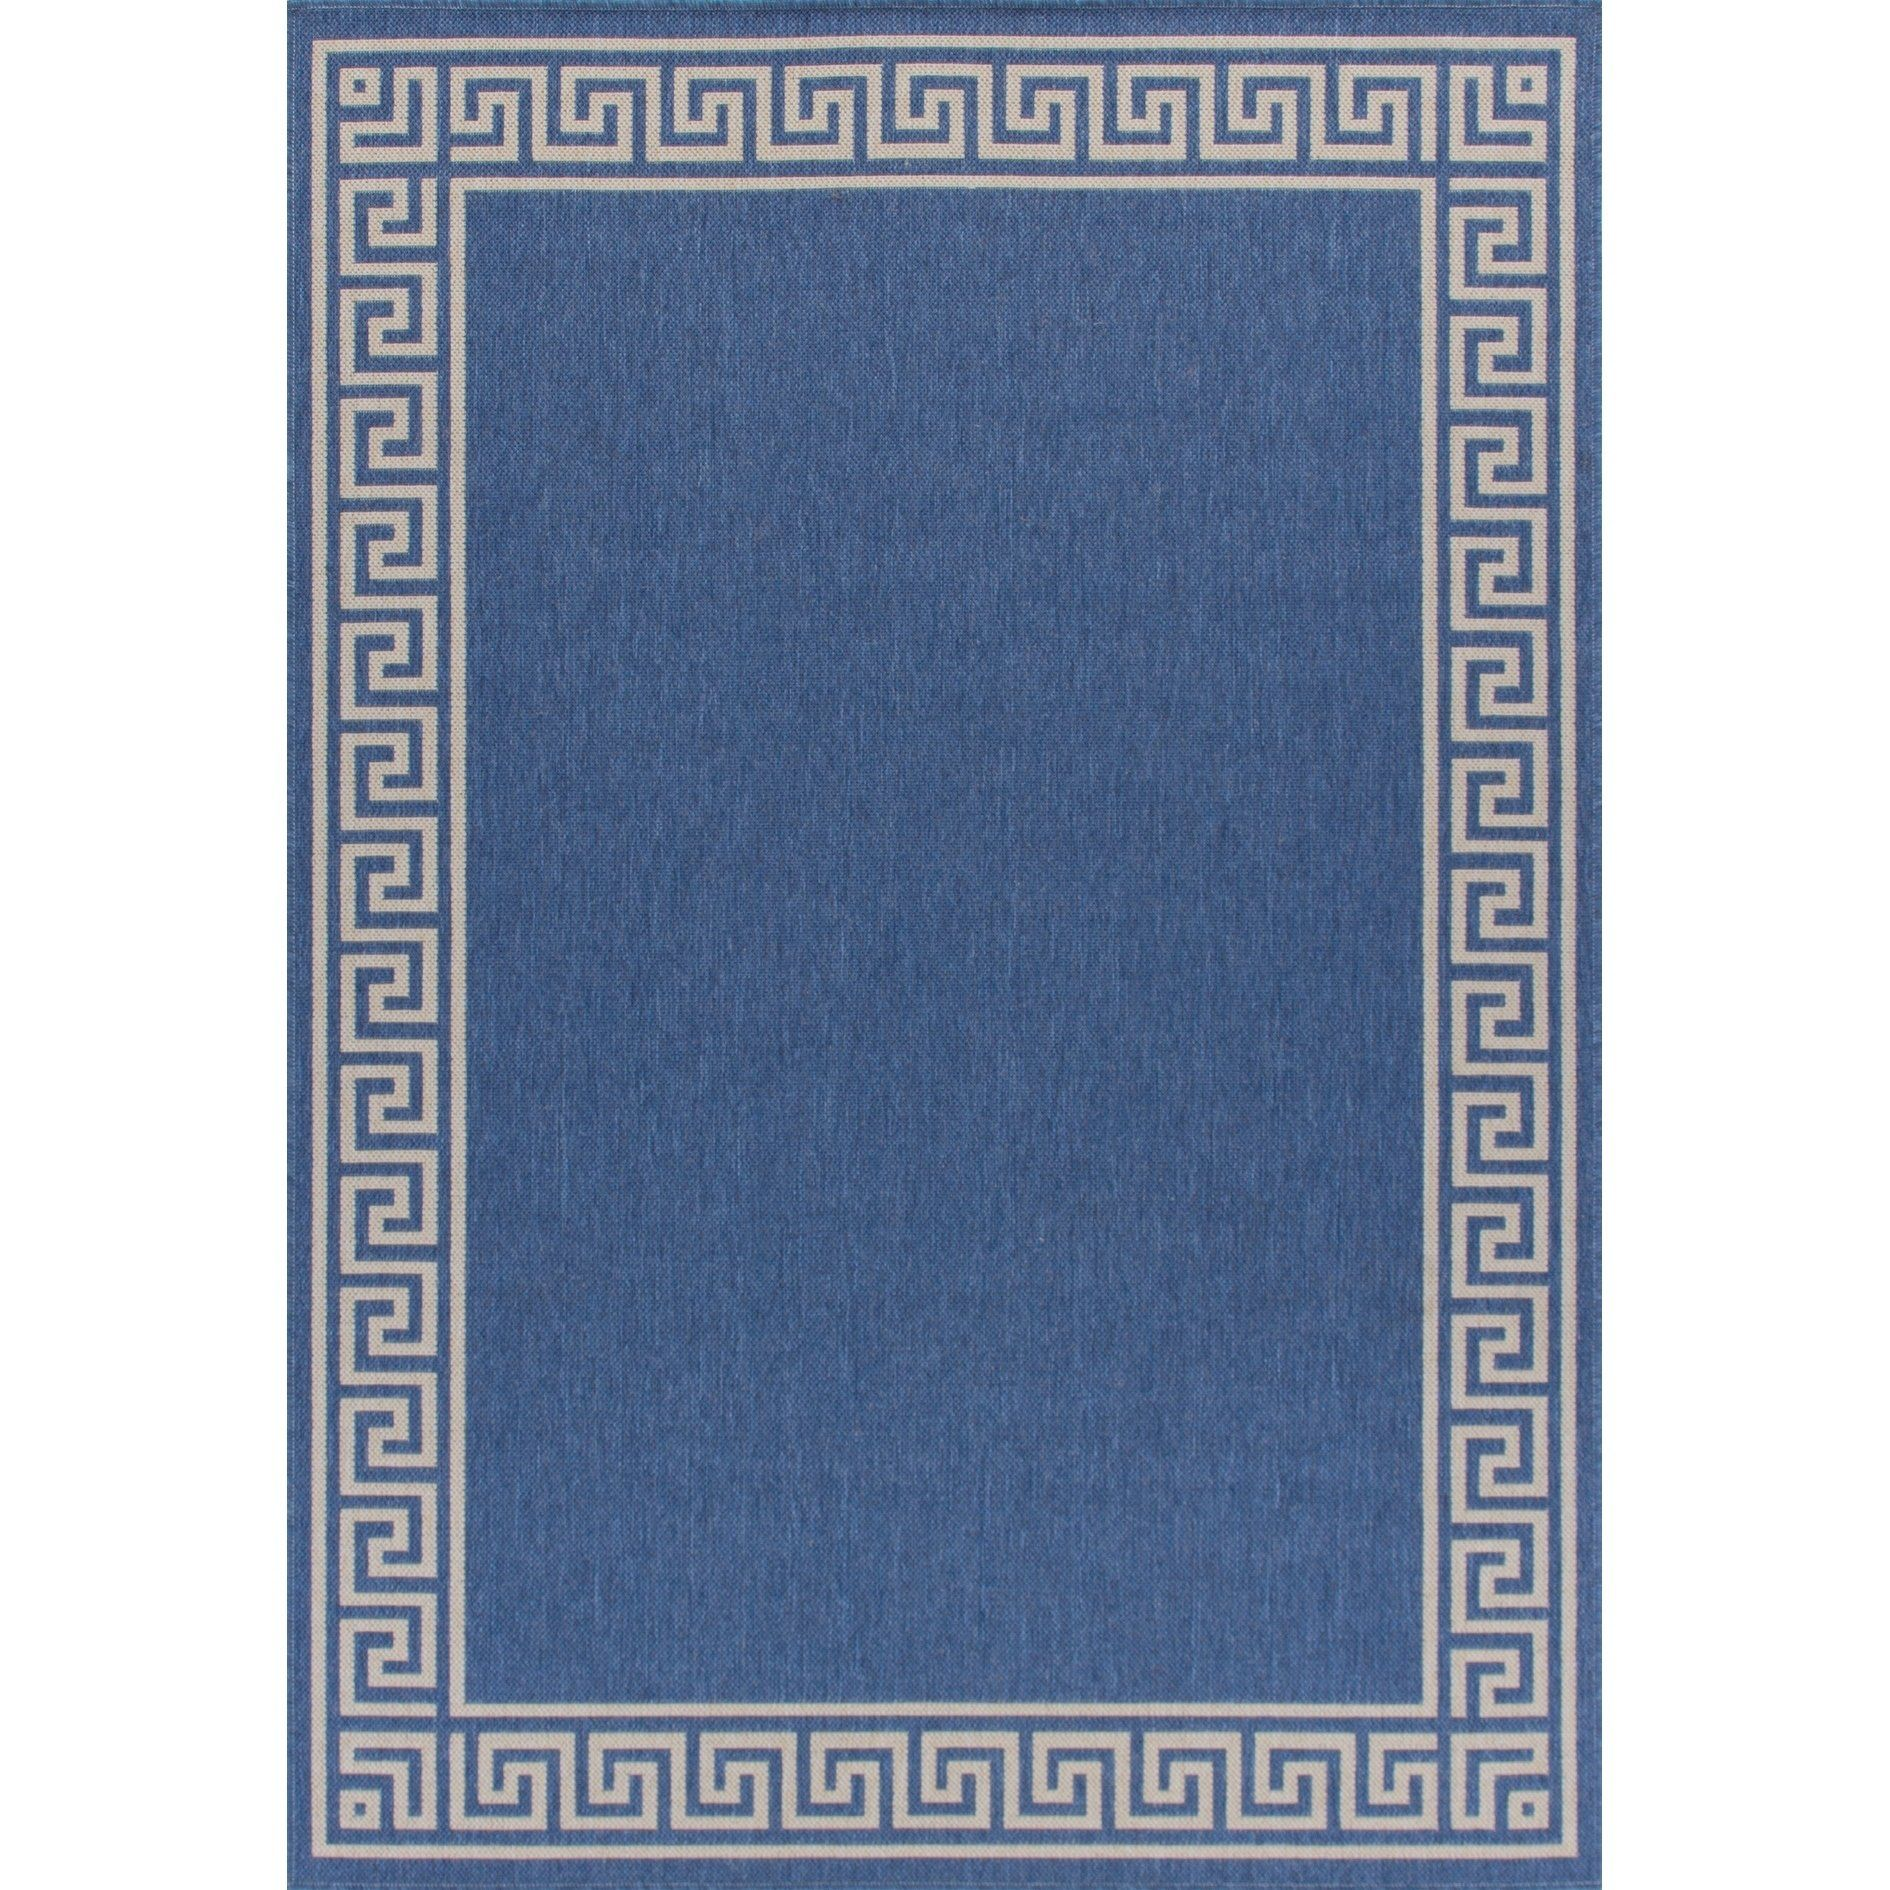 Rug And Decor Canyon Indoor Outdoor Weather Proof Traditional Rug Blue Blue Off White Blue Cream 4 X 6 Polypropylene Abstract Indoor Outdoor Area Rugs Outdoor Area Rugs Rugs